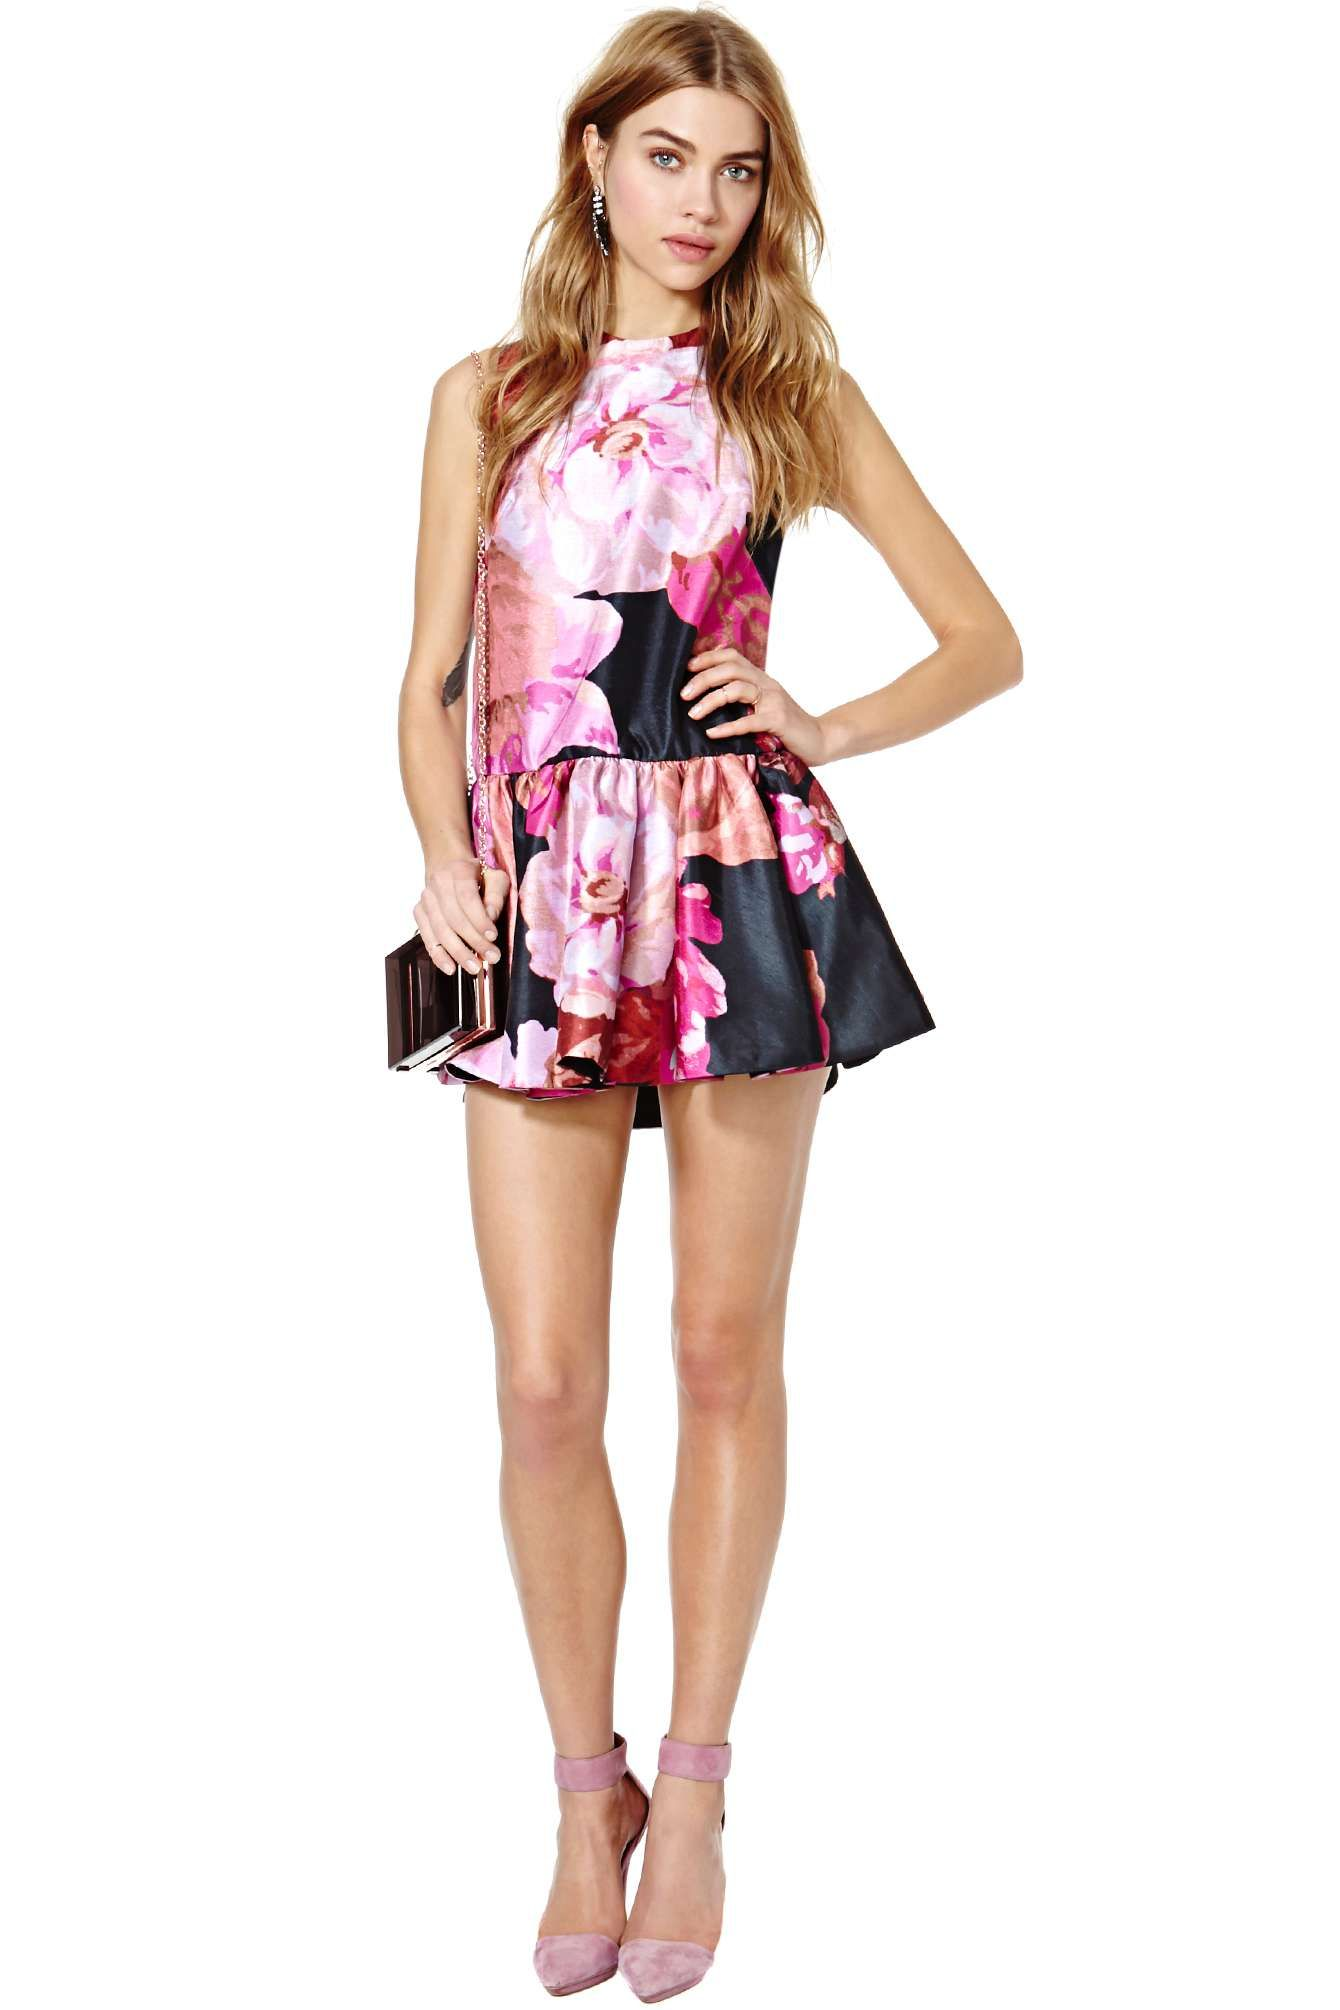 Cameo With Fire Dress | Shop Clothes at Nasty Gal